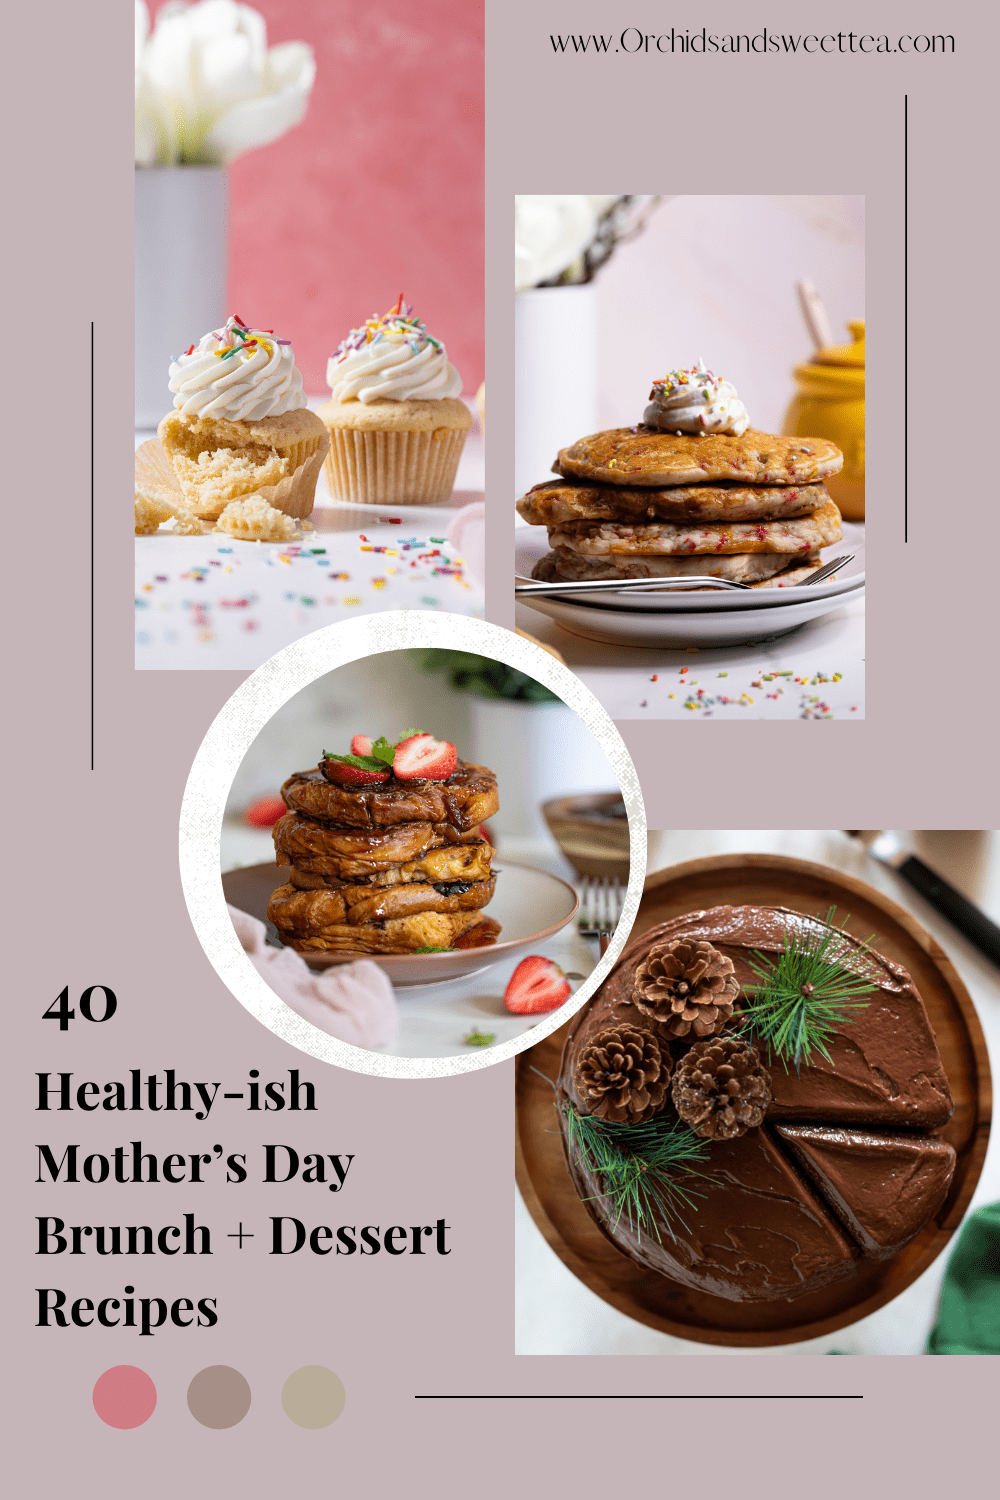 40 Healthy-ish Mother's Day Brunch + Dessert Recipes